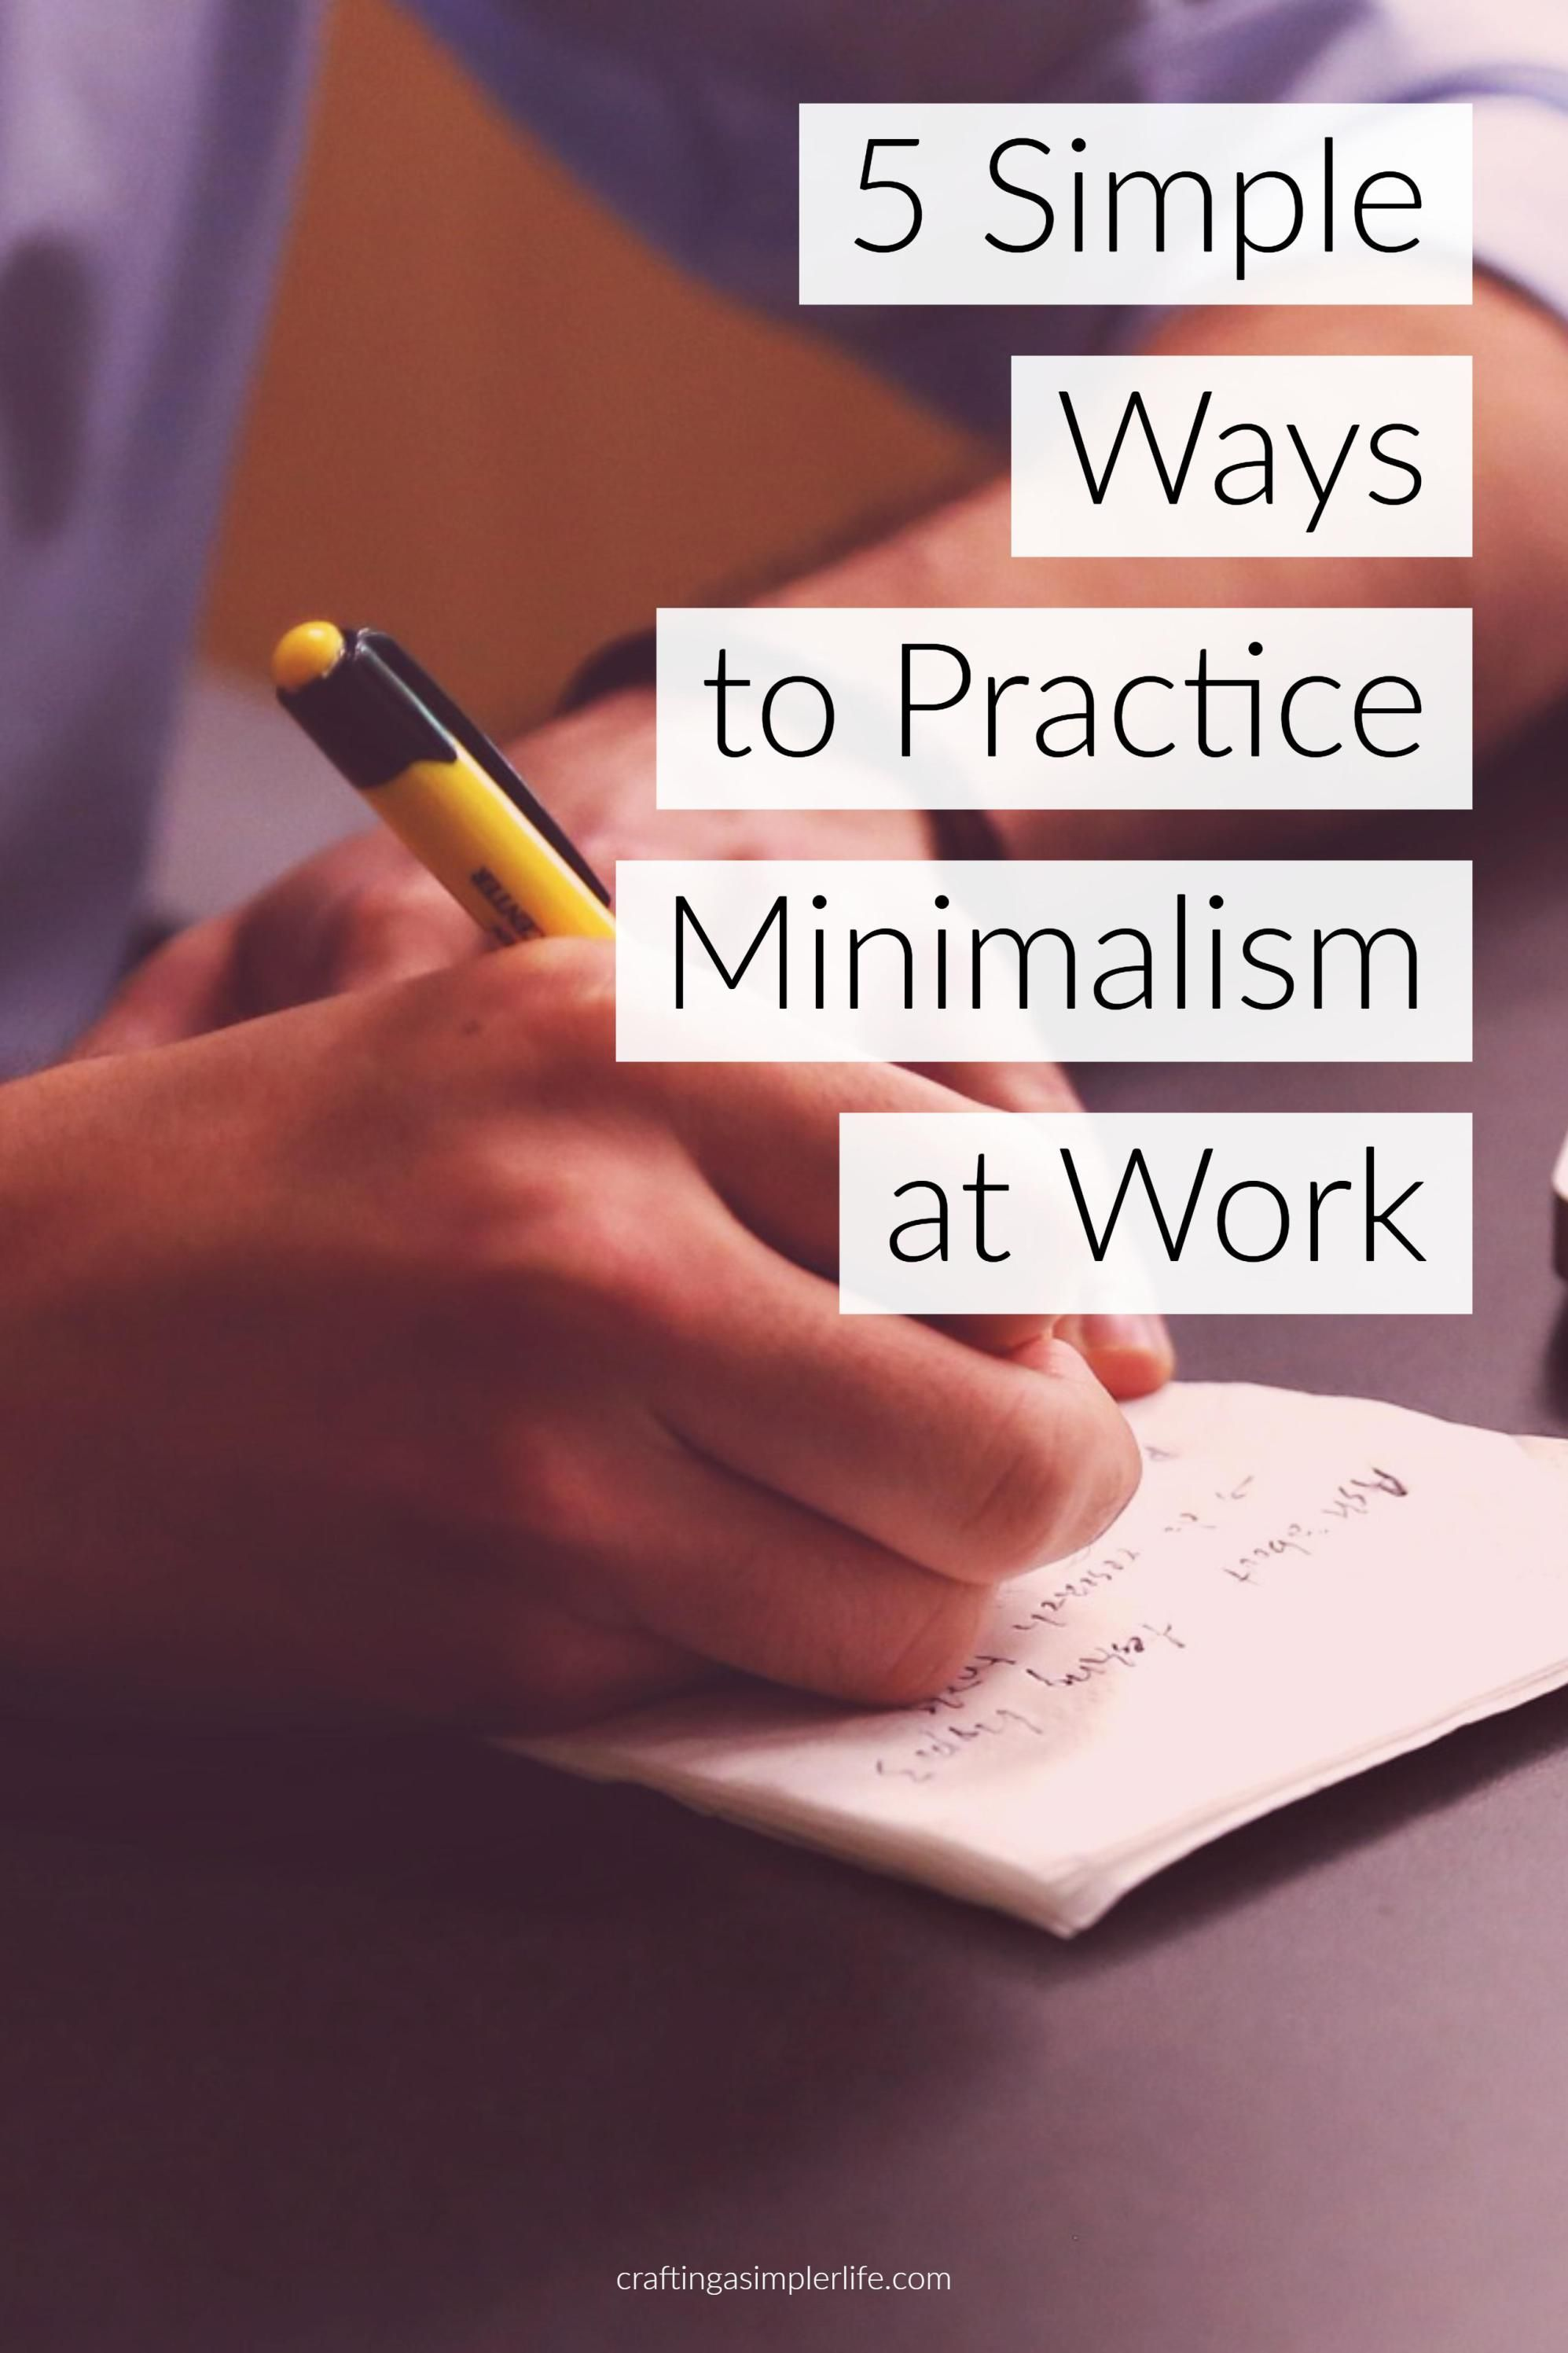 Simple Ways to Practice Minimalism at Work (With images